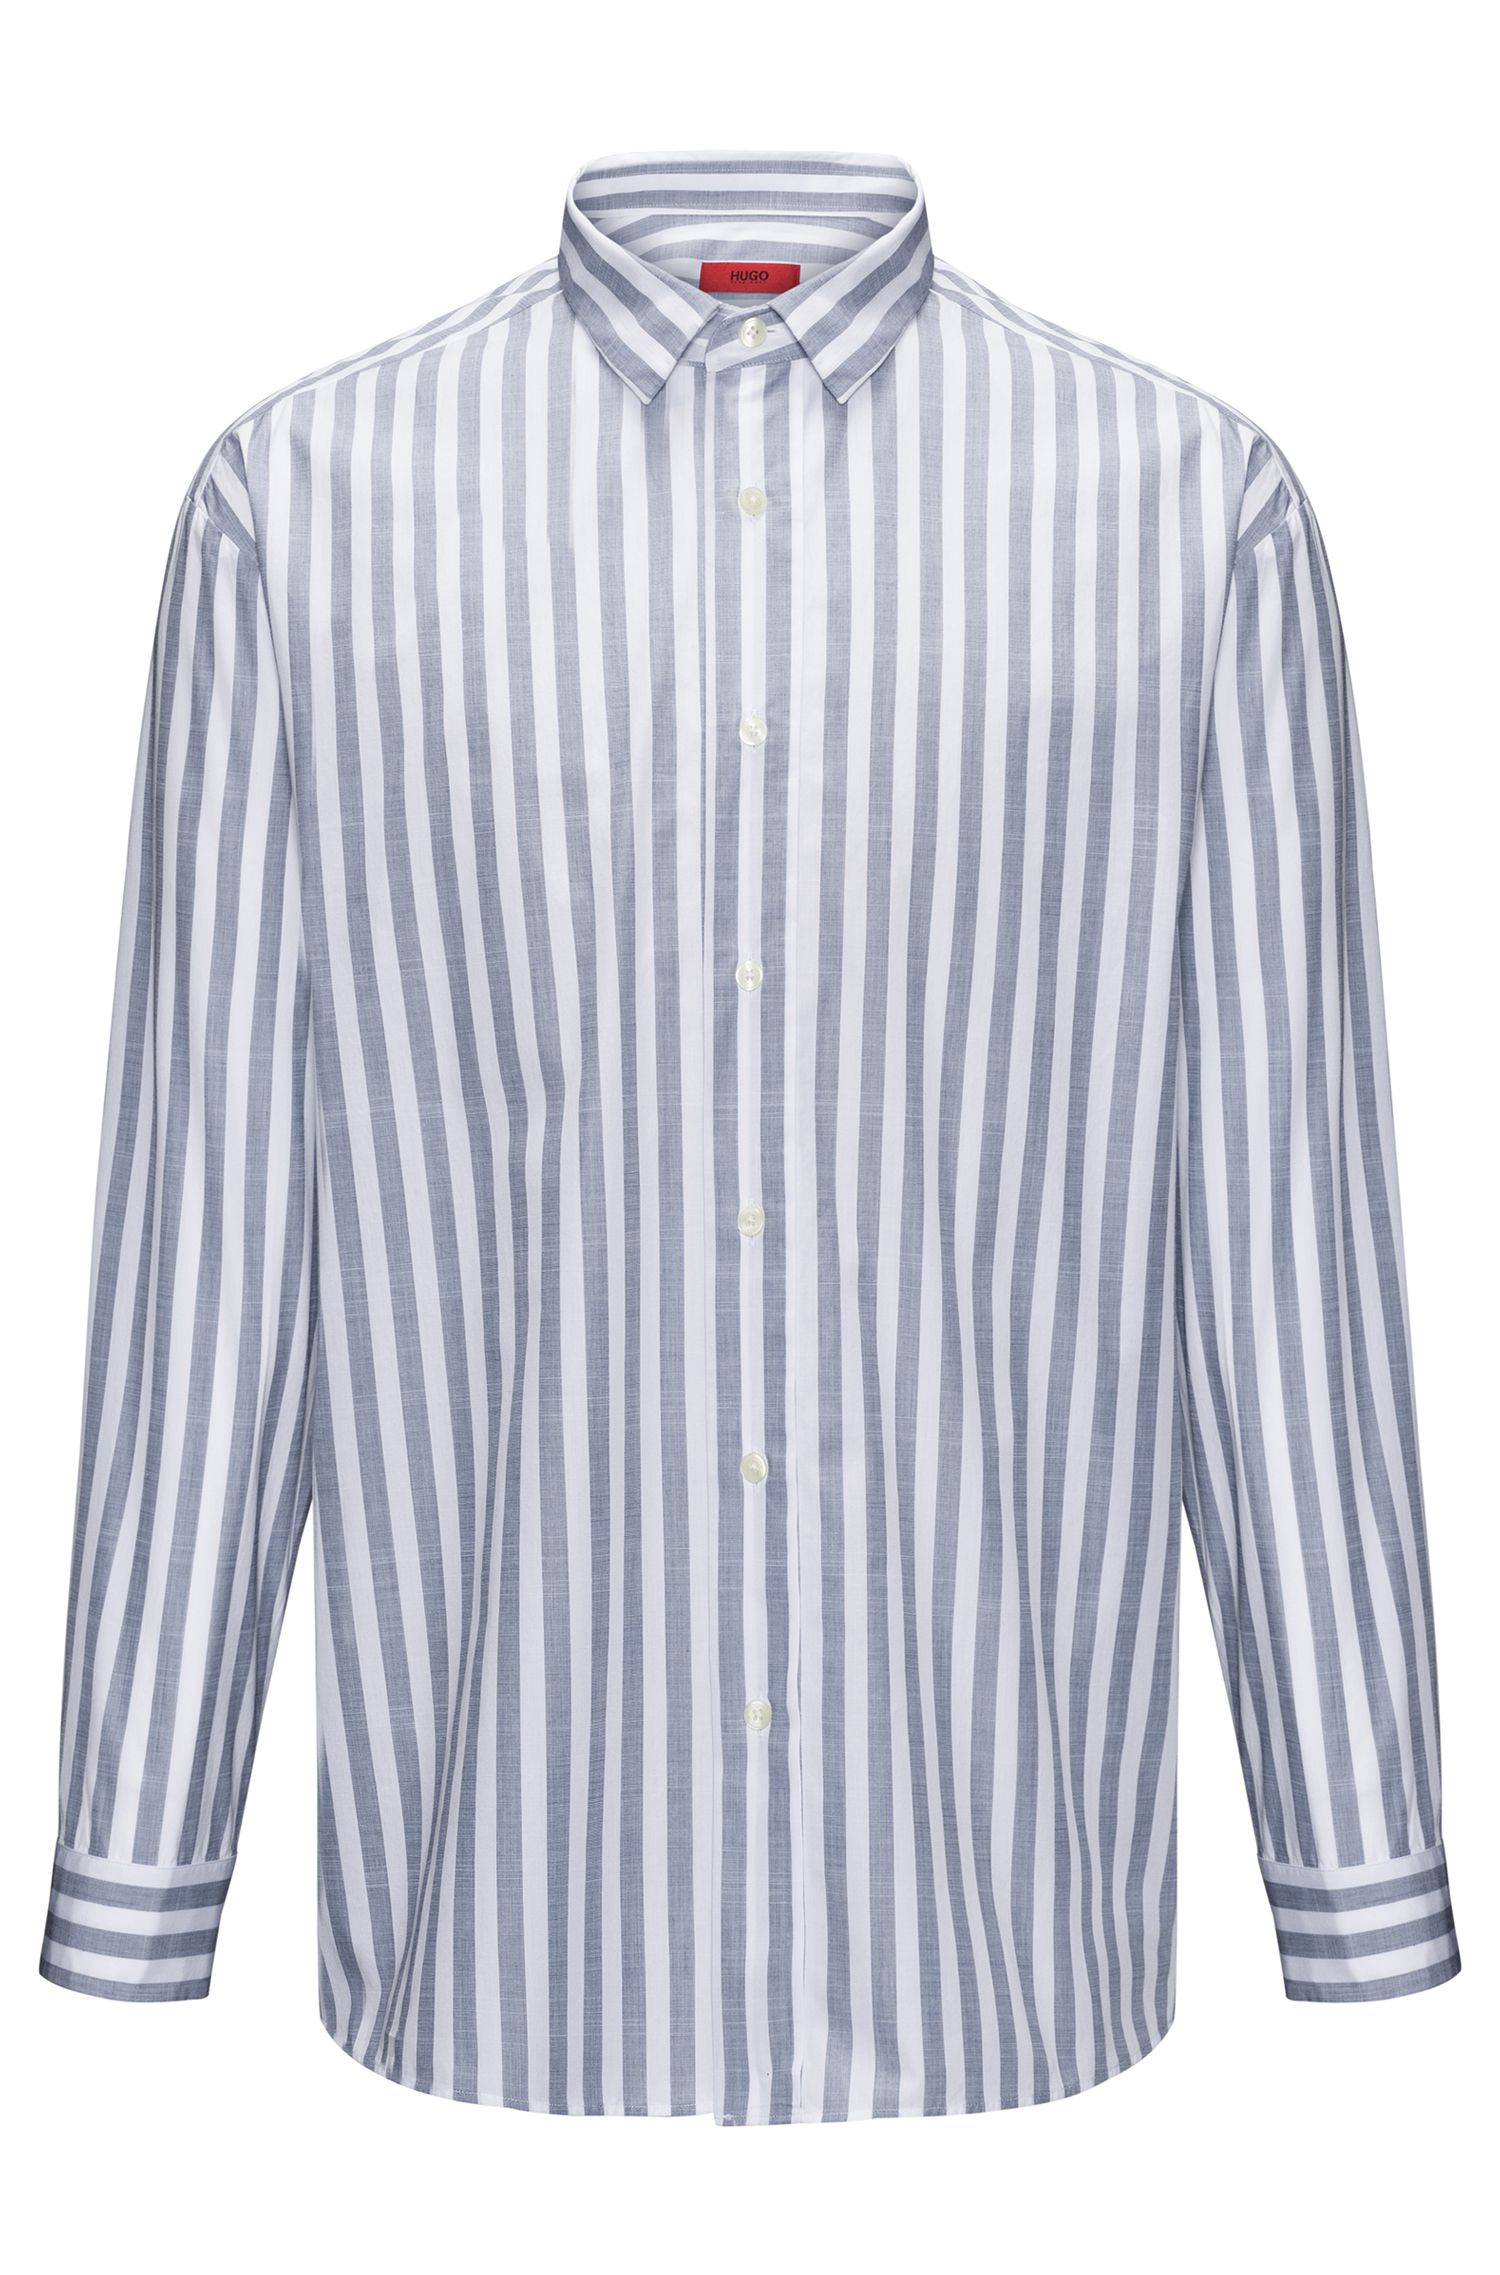 Striped Cotton Sport Shirt, Relaxed Fit | Emilton, Open White